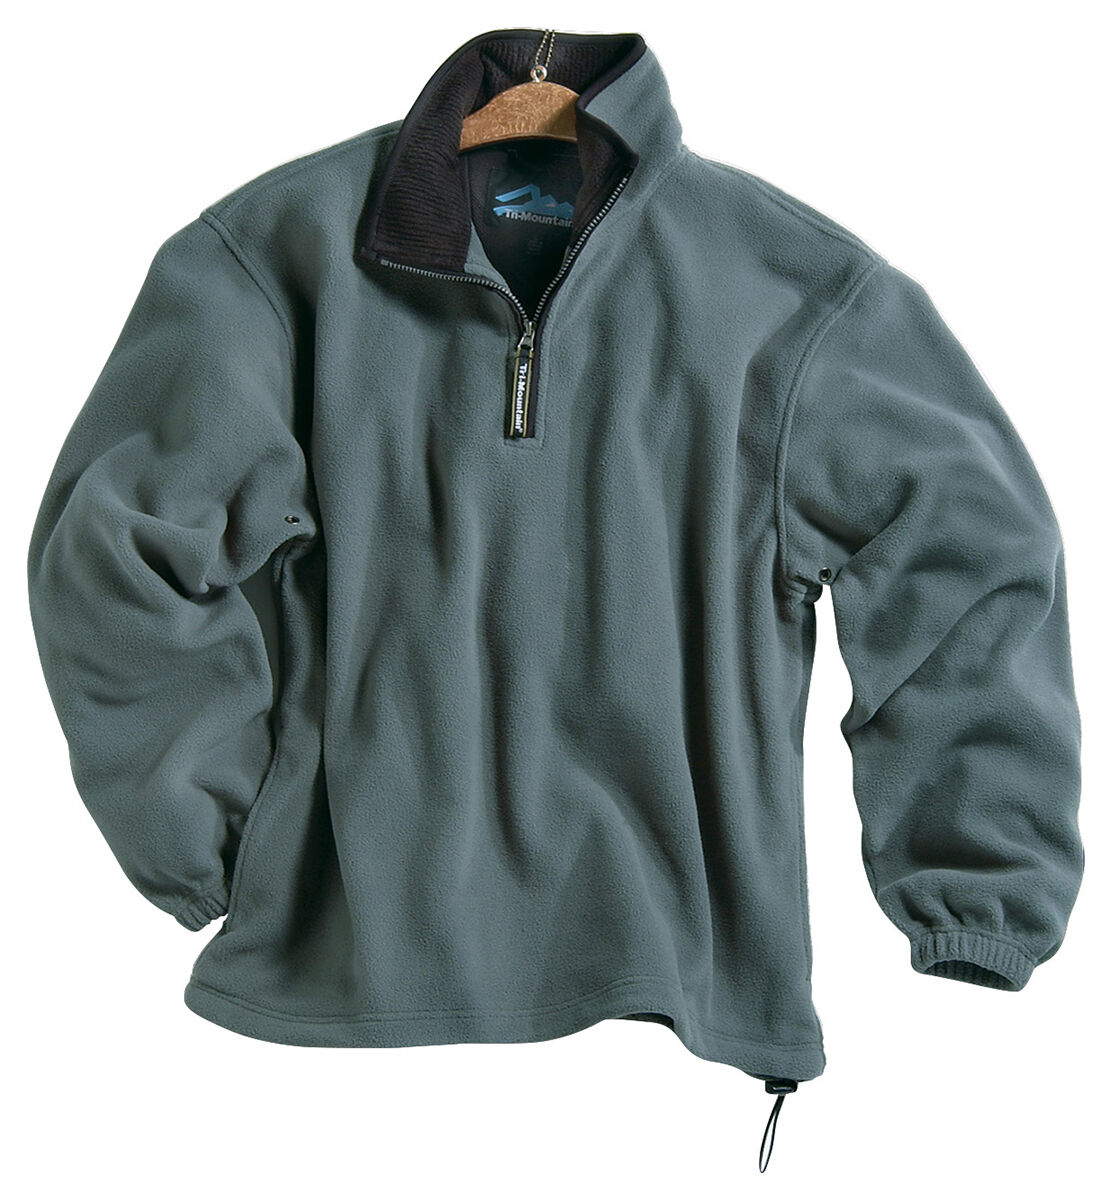 Tri-Mountain New Men's Polyester Micro Fleece 1/4 Zip Winter ...